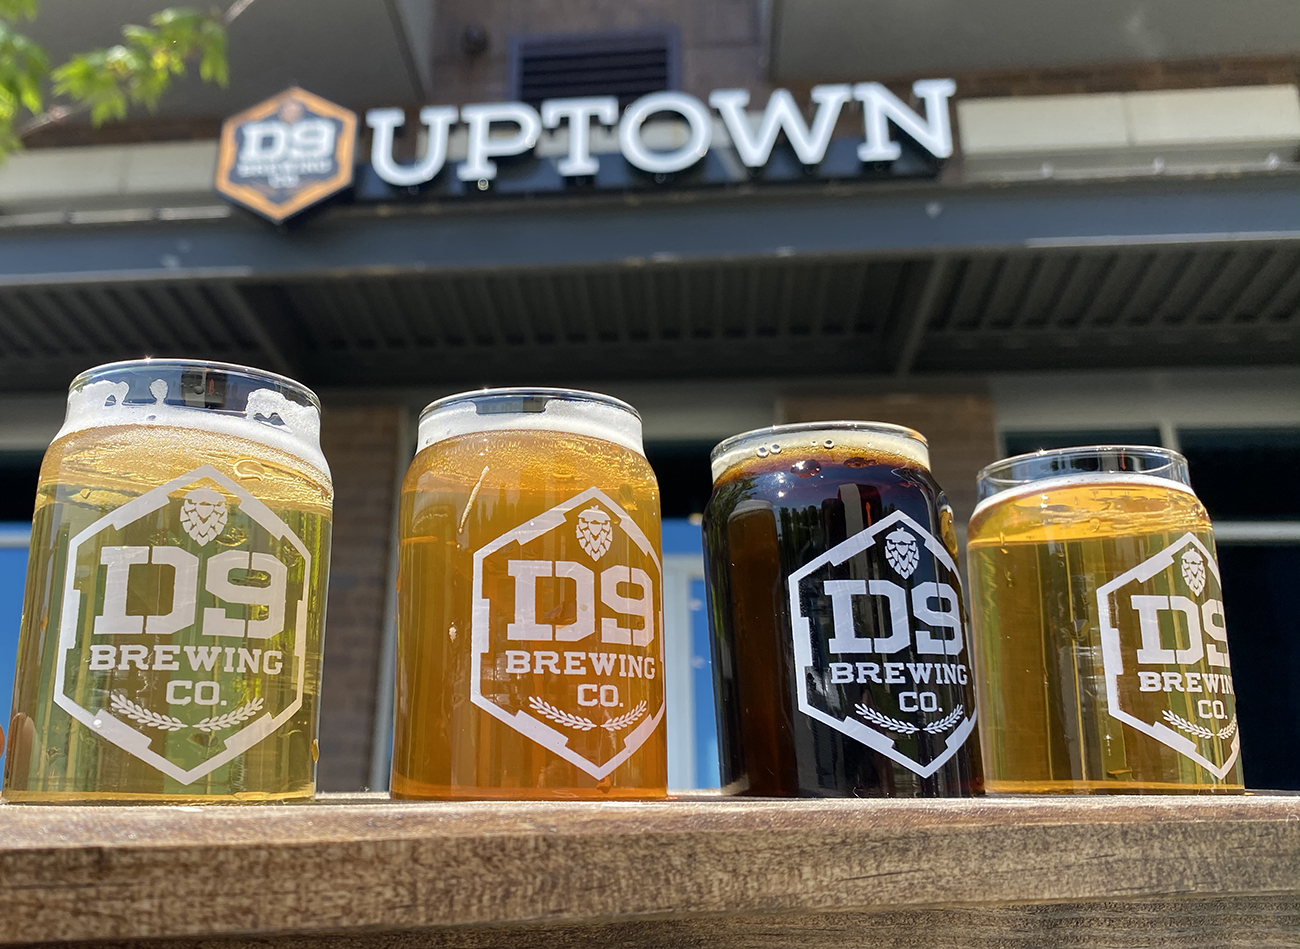 D9 Brewing is now open Uptown. Seltzer slushies and outdoor pavilion to come